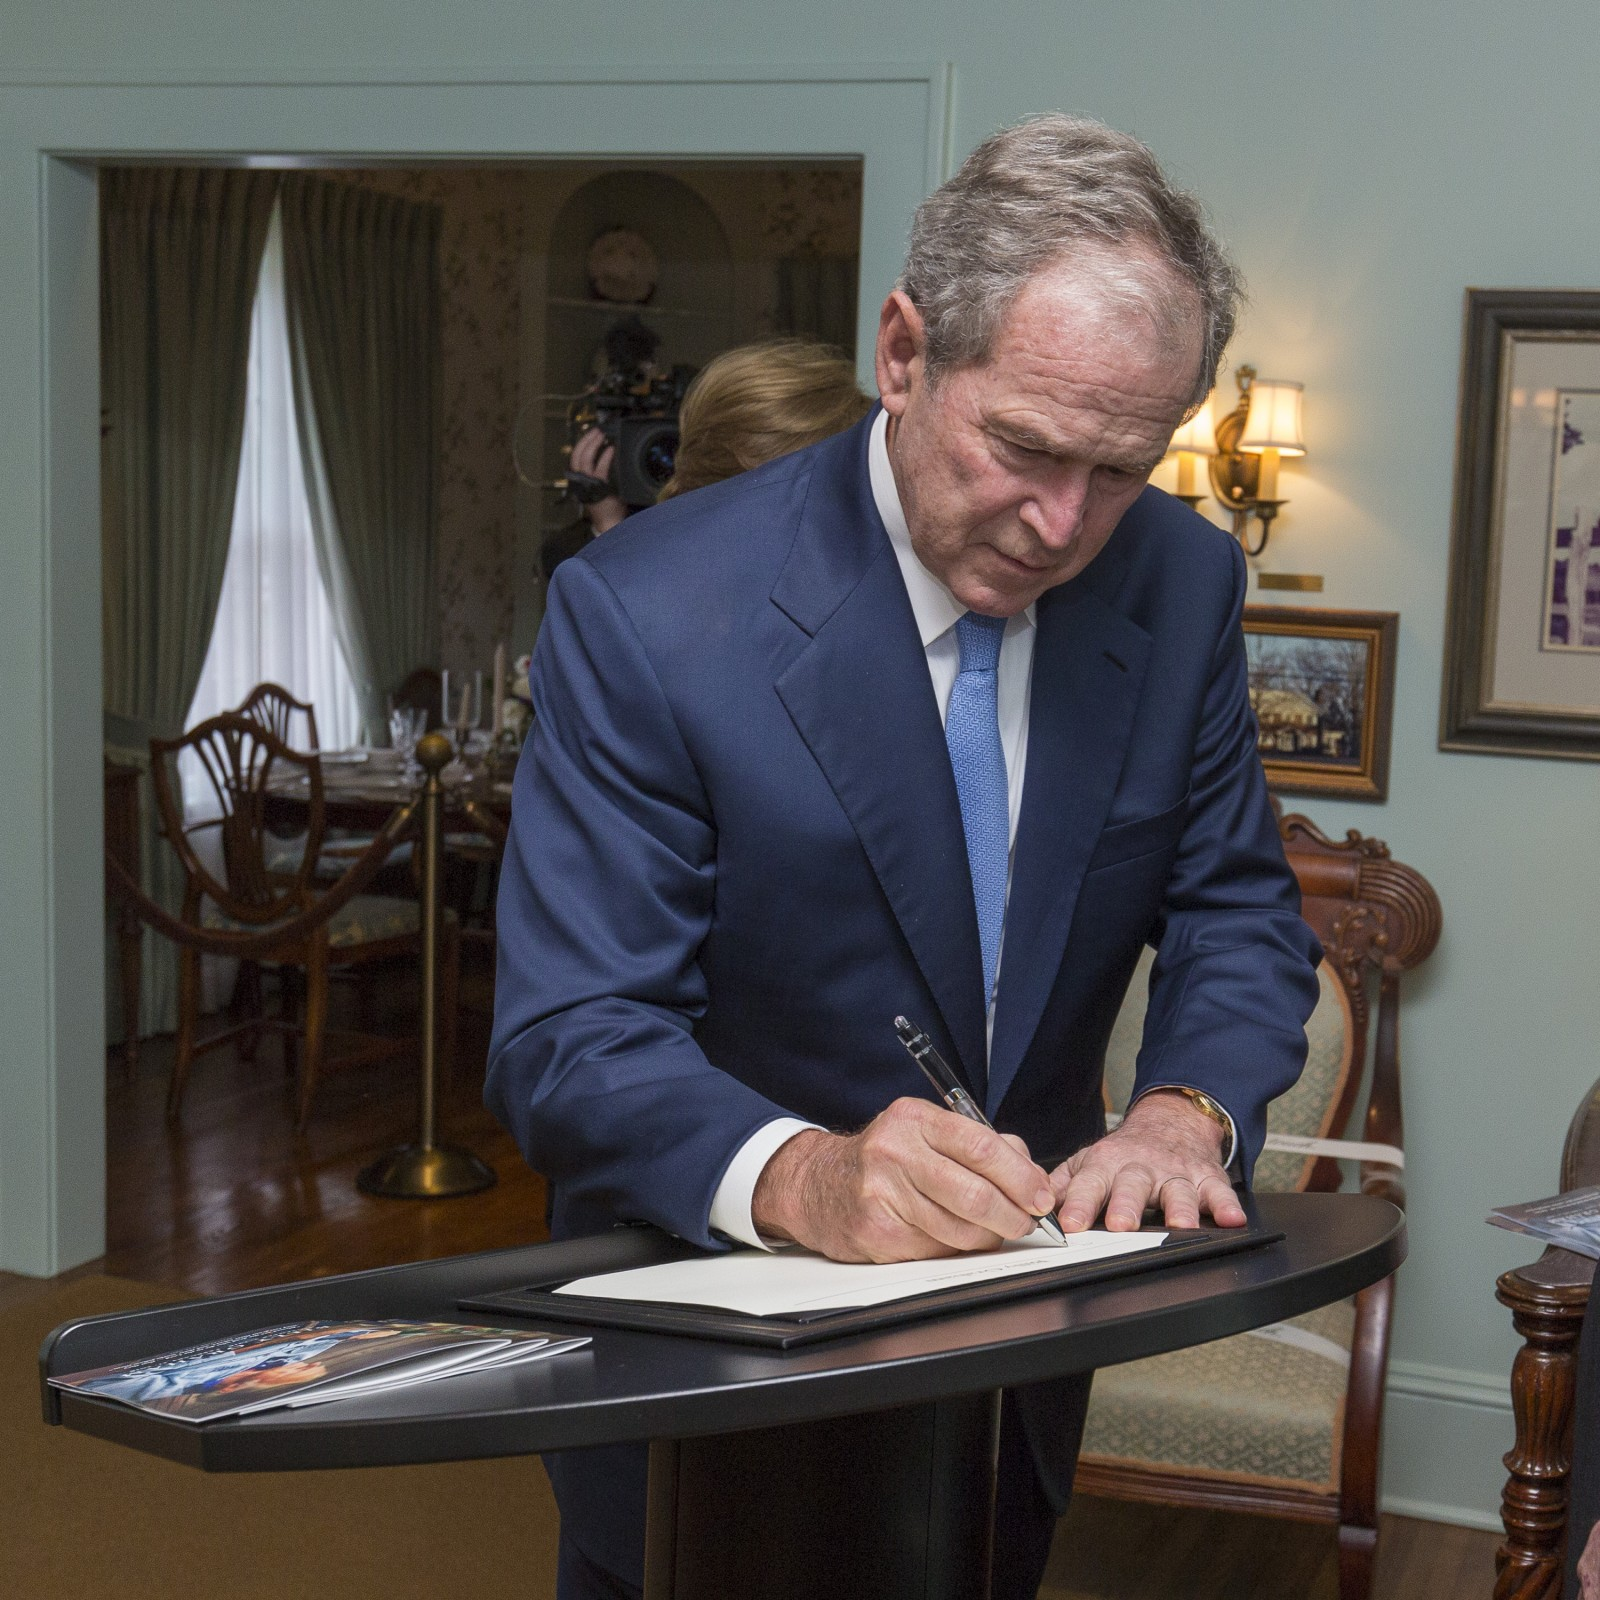 George W. Bush signs the guestbook. Photo: Billy Graham Evangelistic Association<p></p>